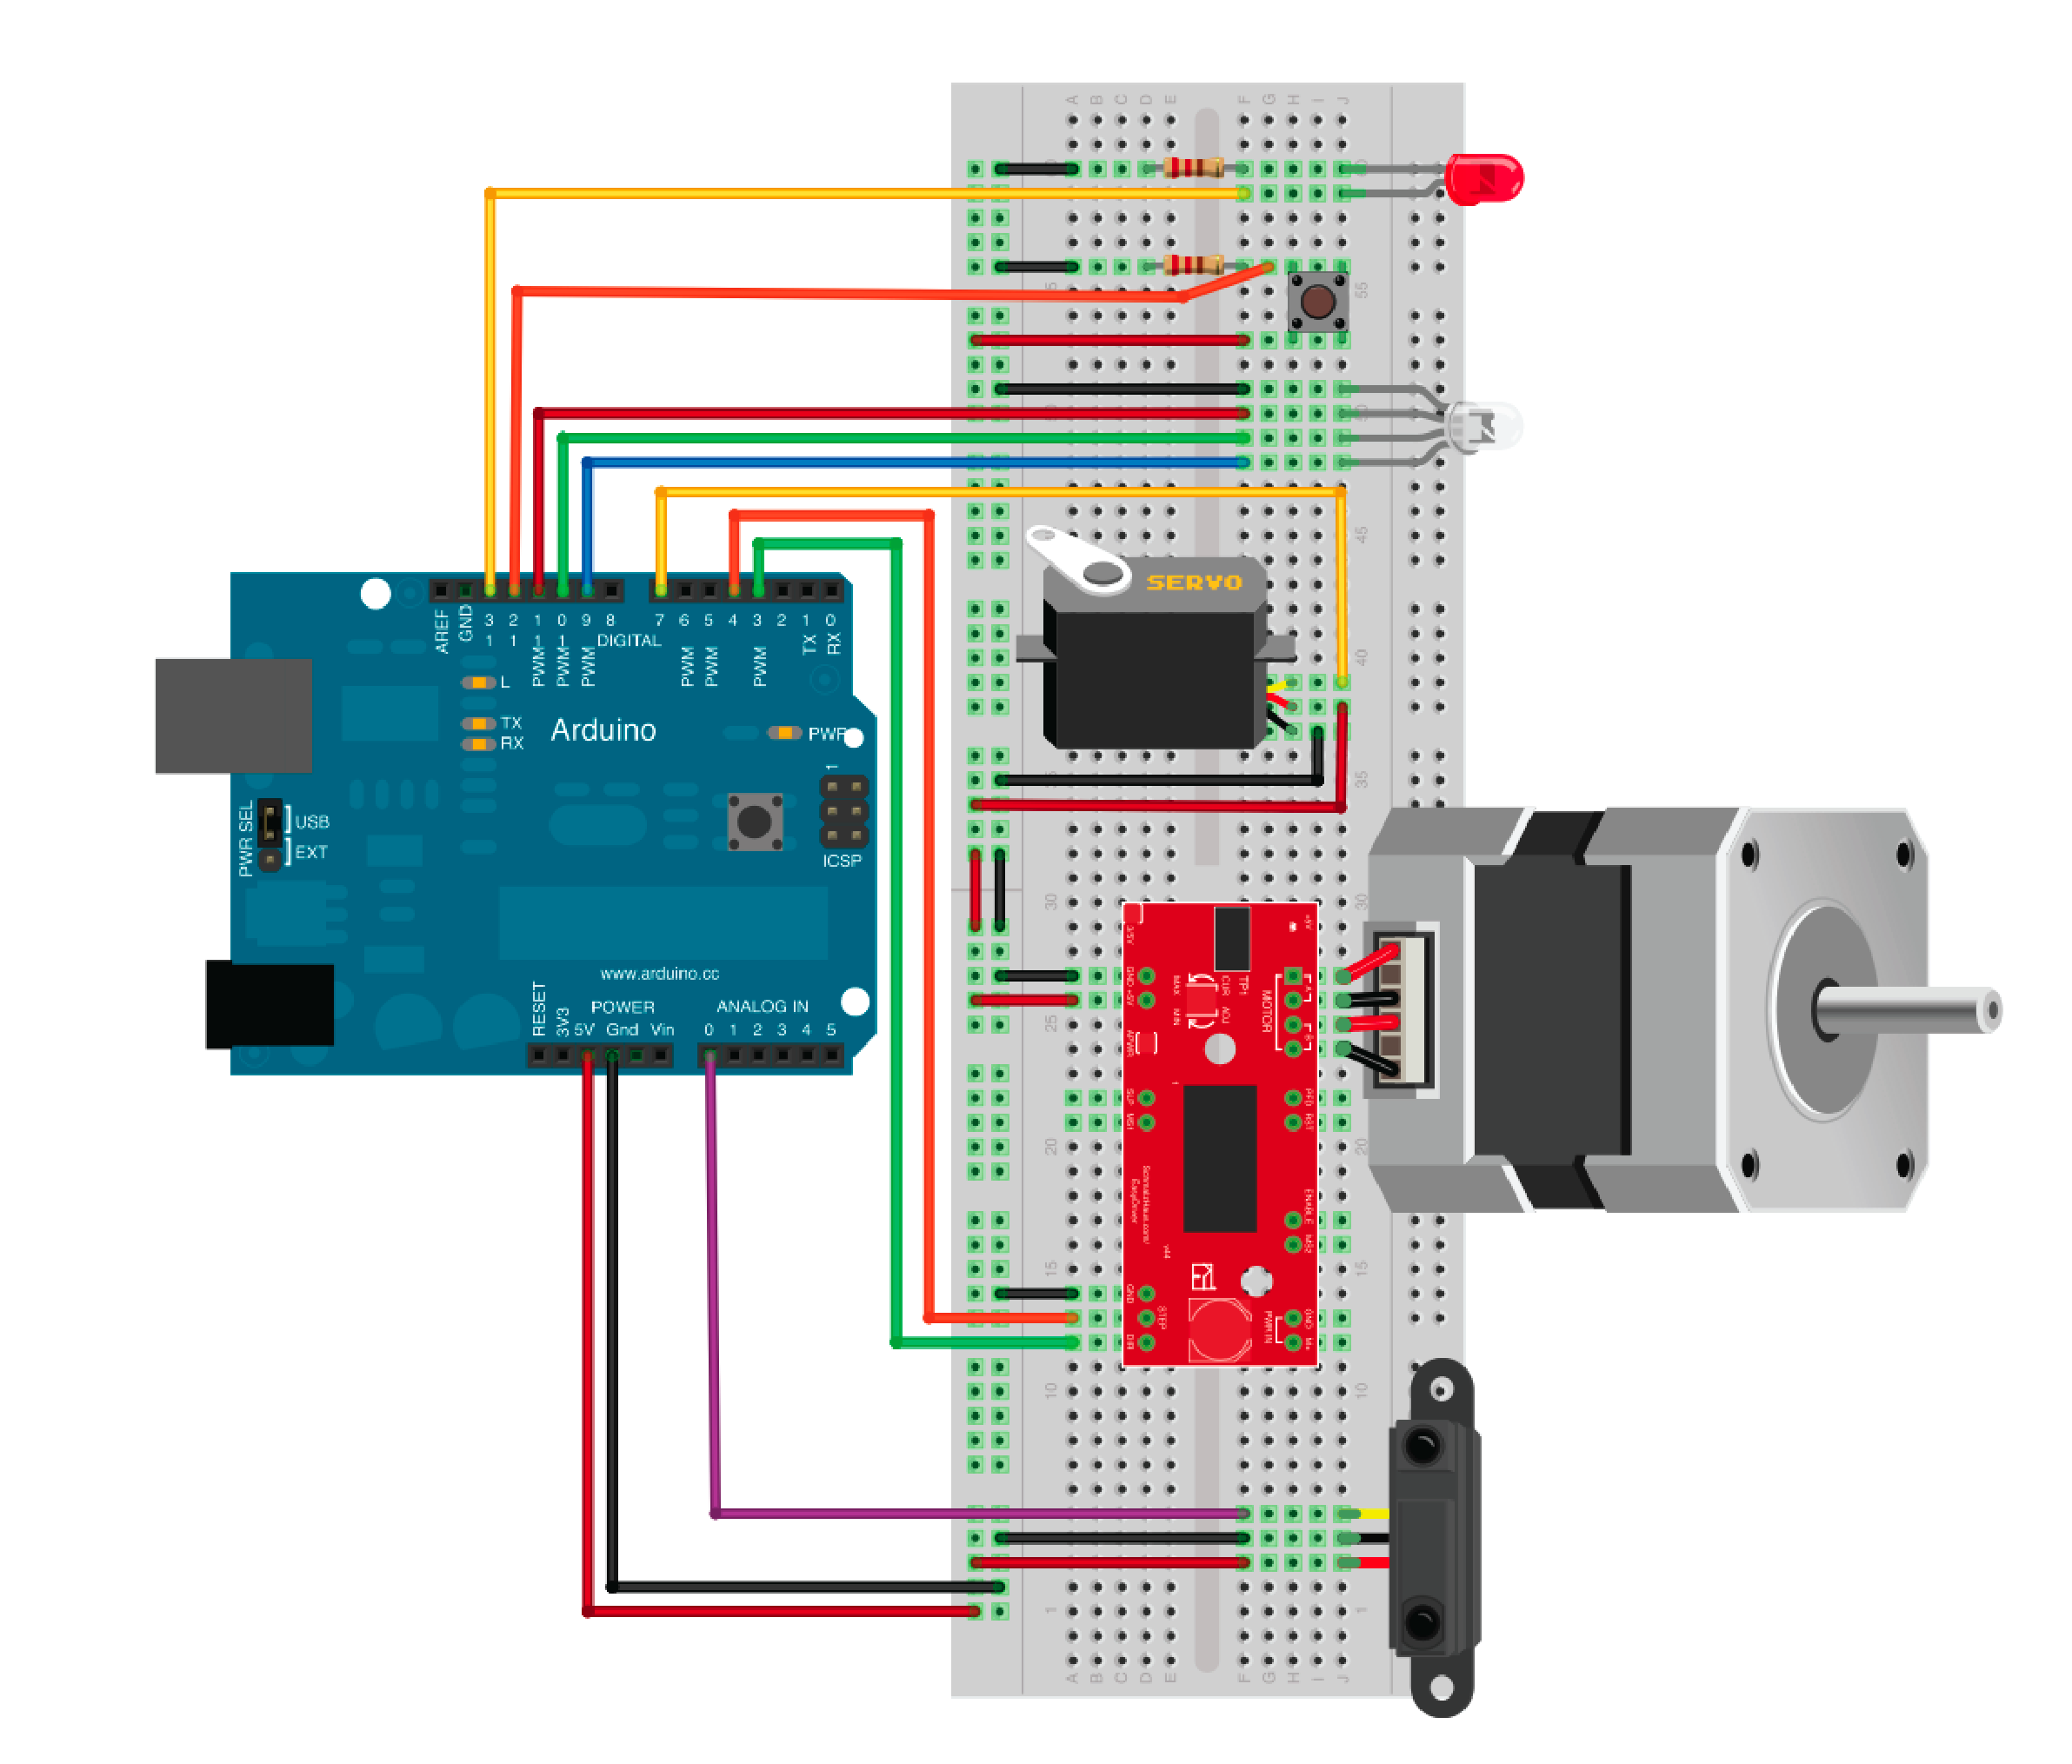 Maxuino Getting Started Planet Arduino Image Of Wired Sensors And